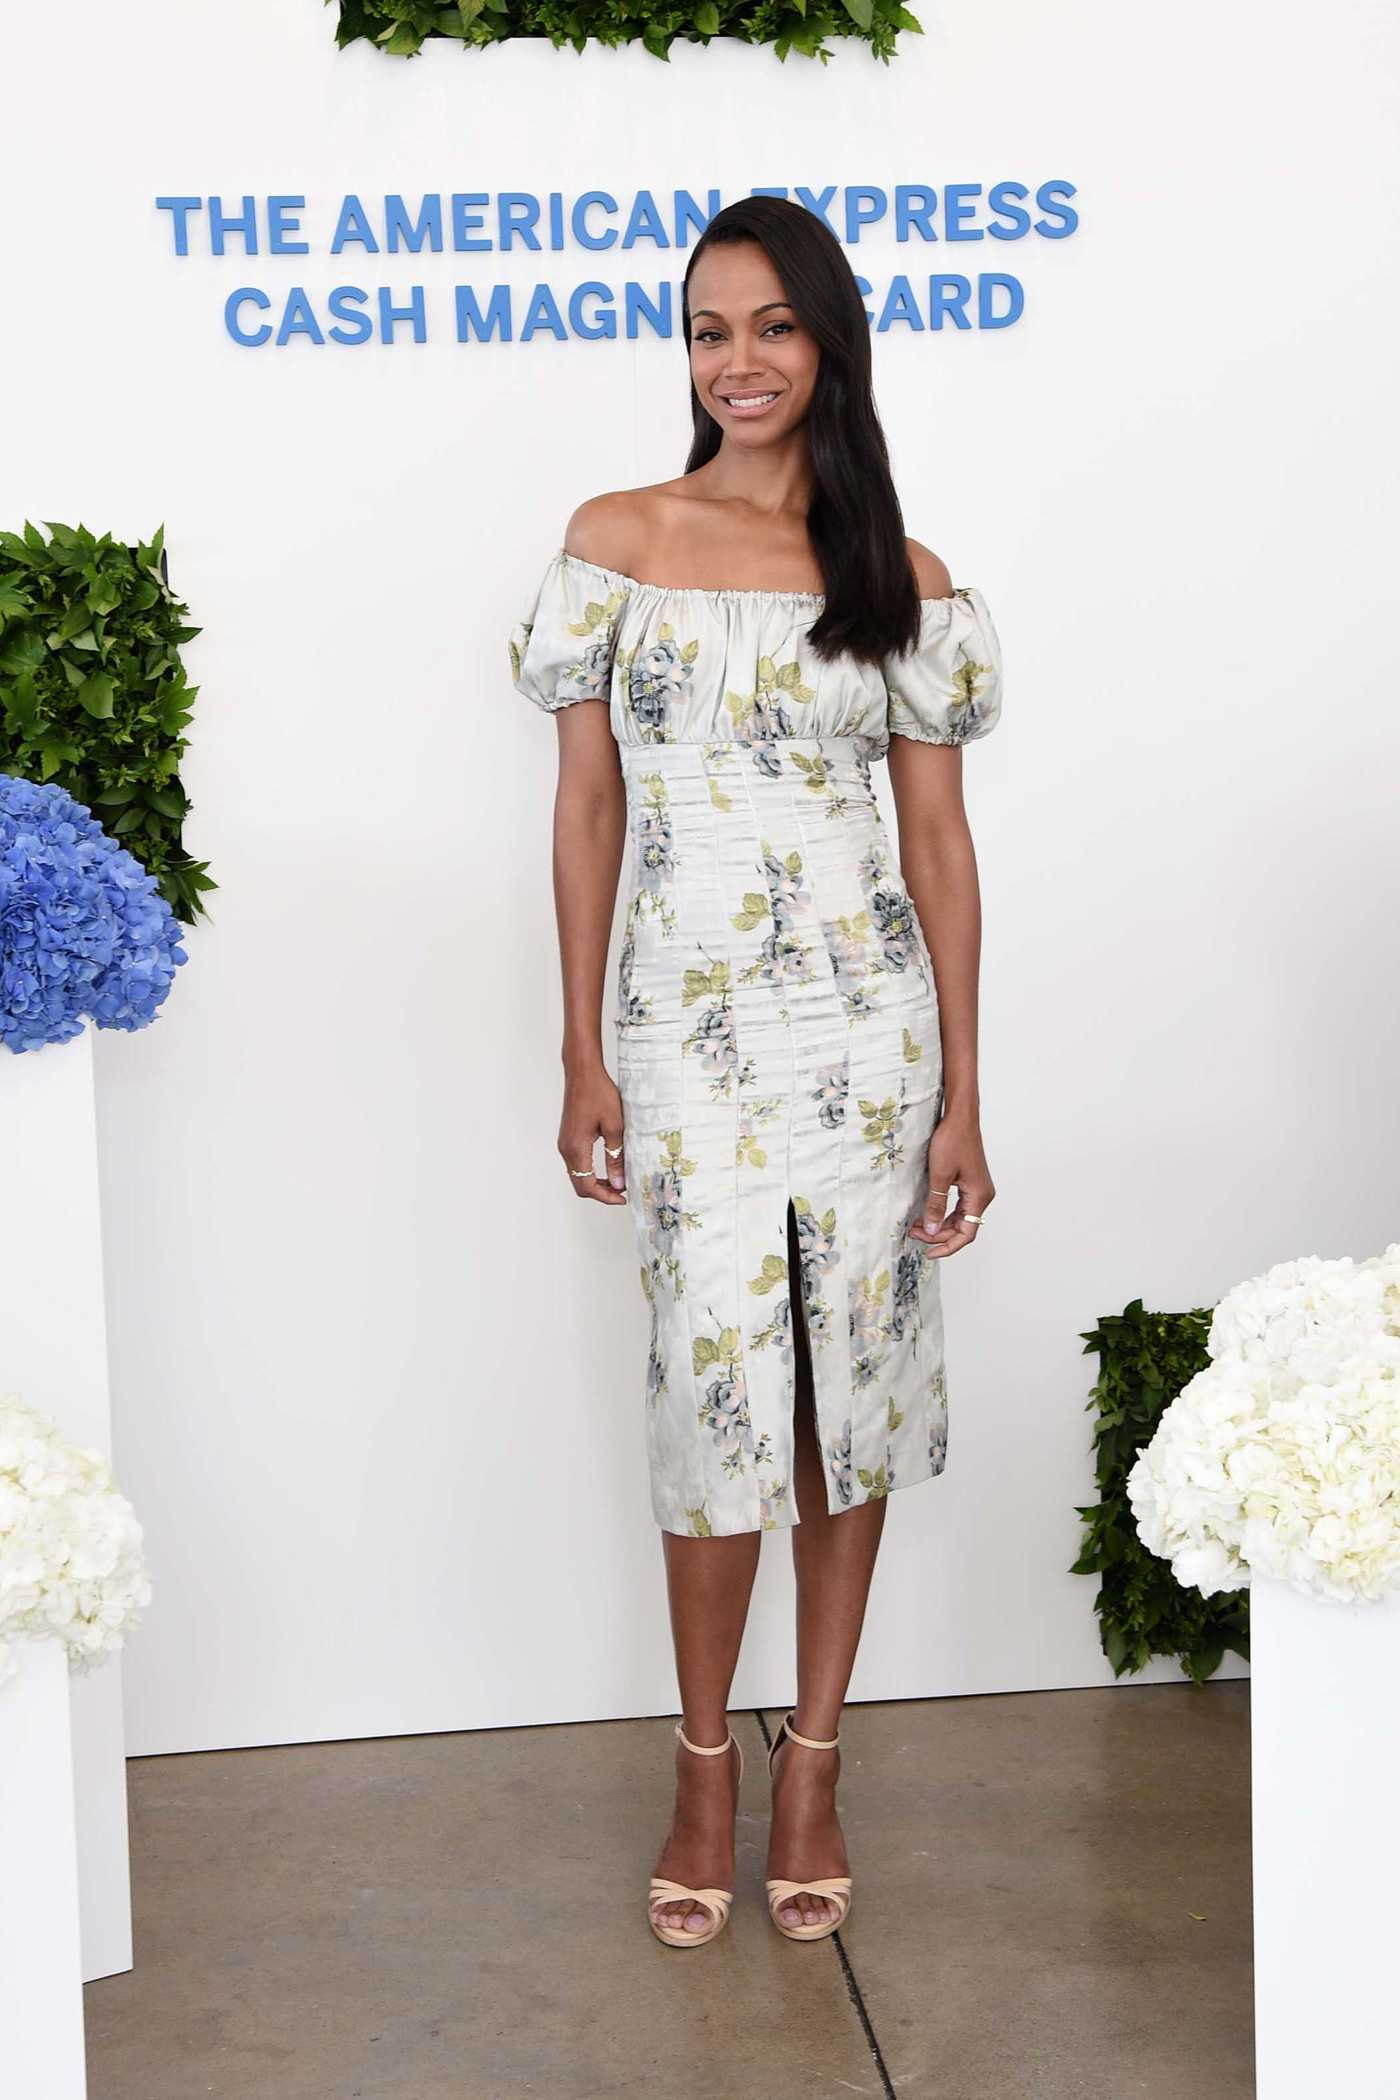 Zoe Saldana Celebrates the Launch of the New American Express Cash Magnet Card at the Simplify Your Summer Event in NYC 06/14/2018